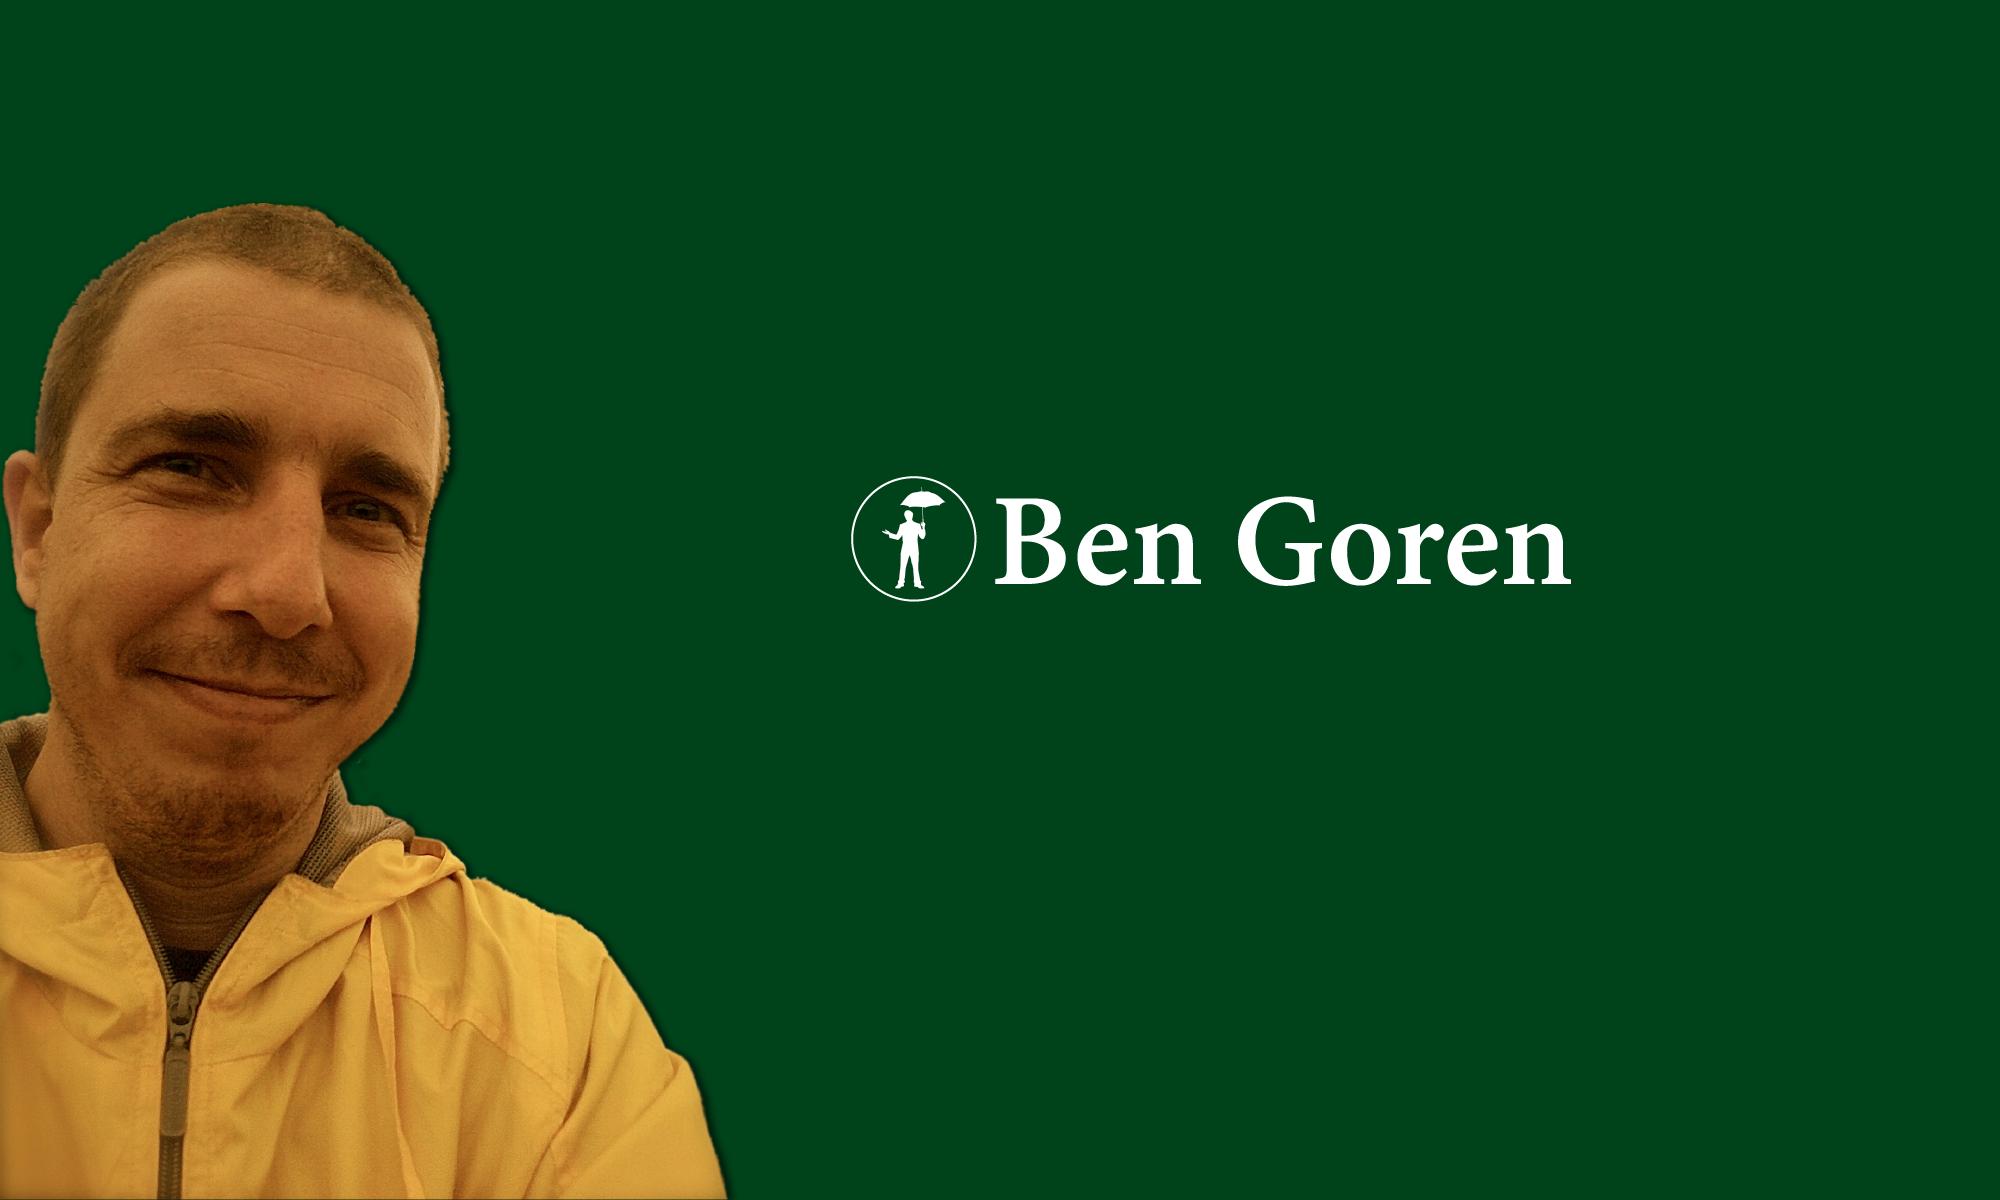 Home page full screen image of Ben Goren and title of website